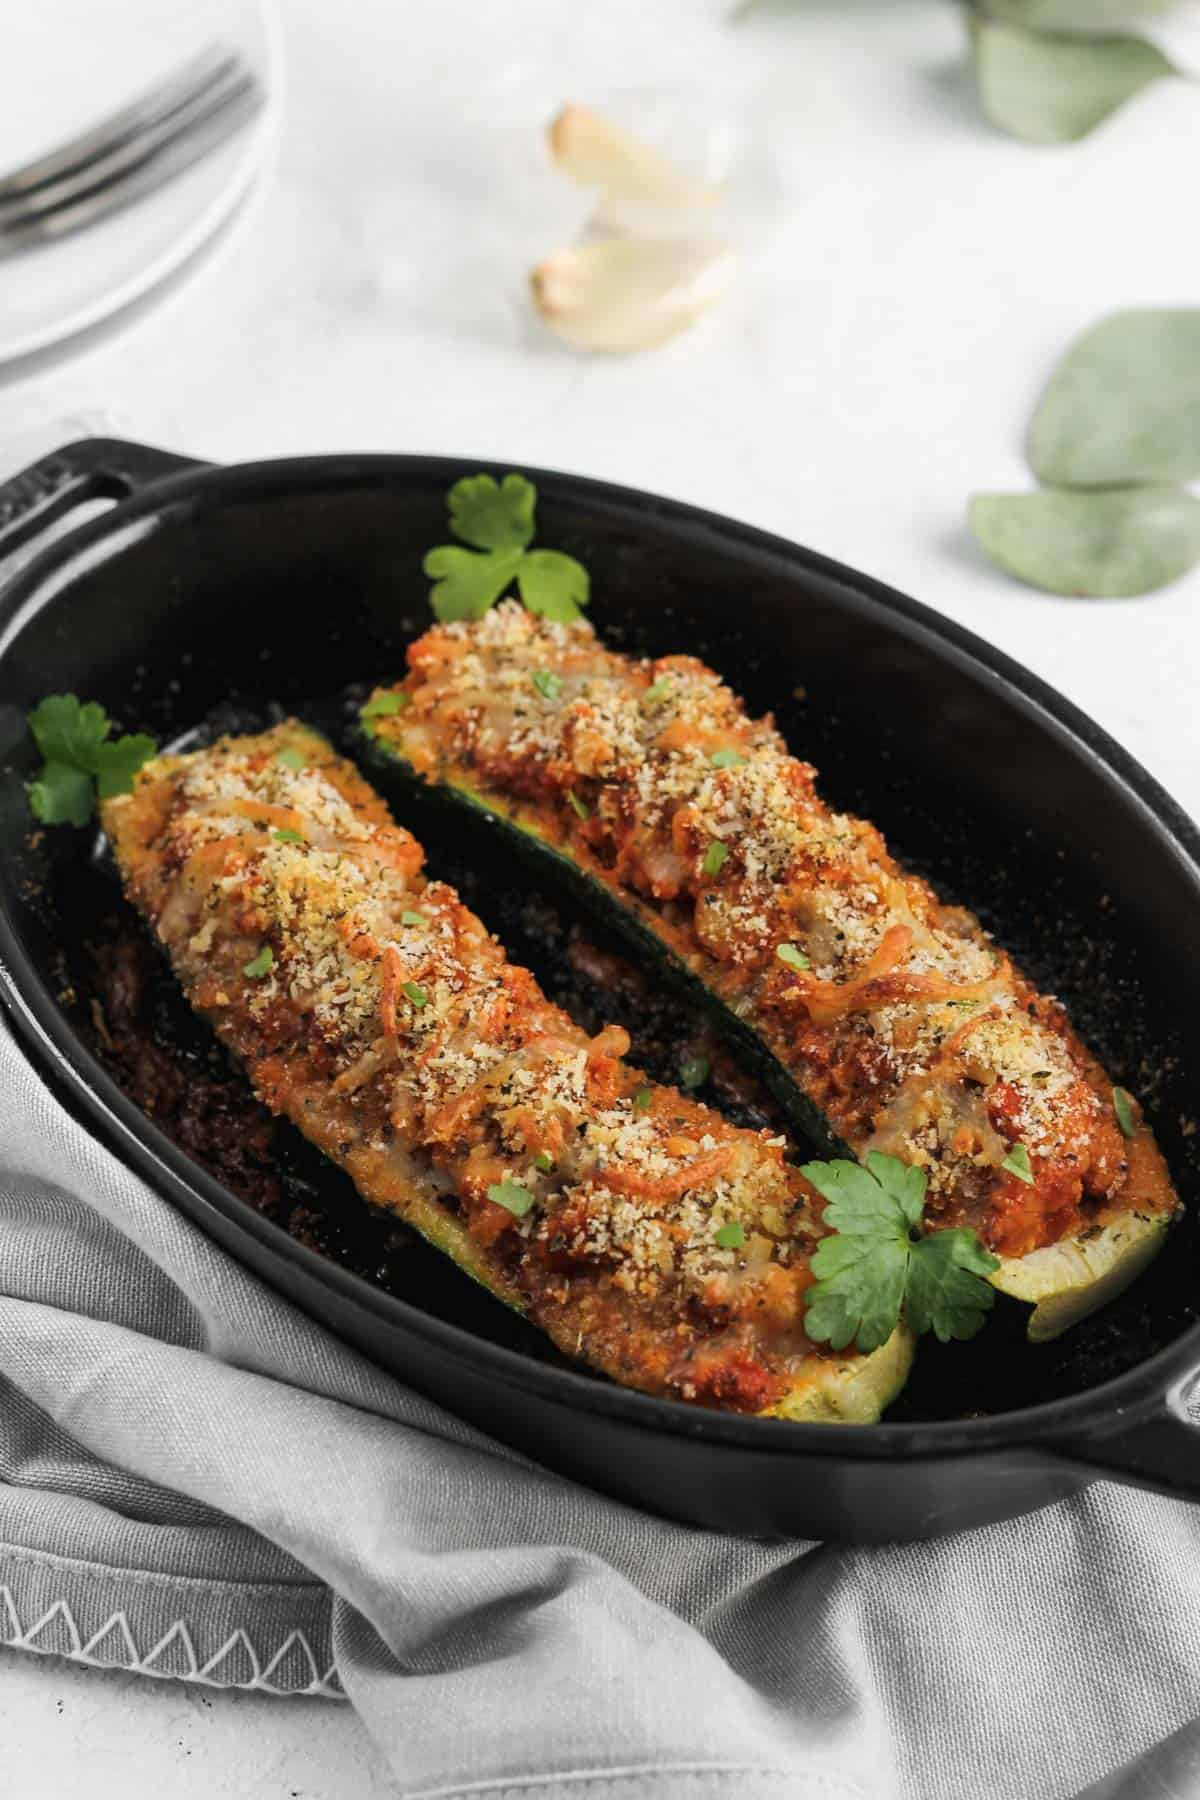 Stuffed zucchini boats garnished with parsley in a black baking dish.